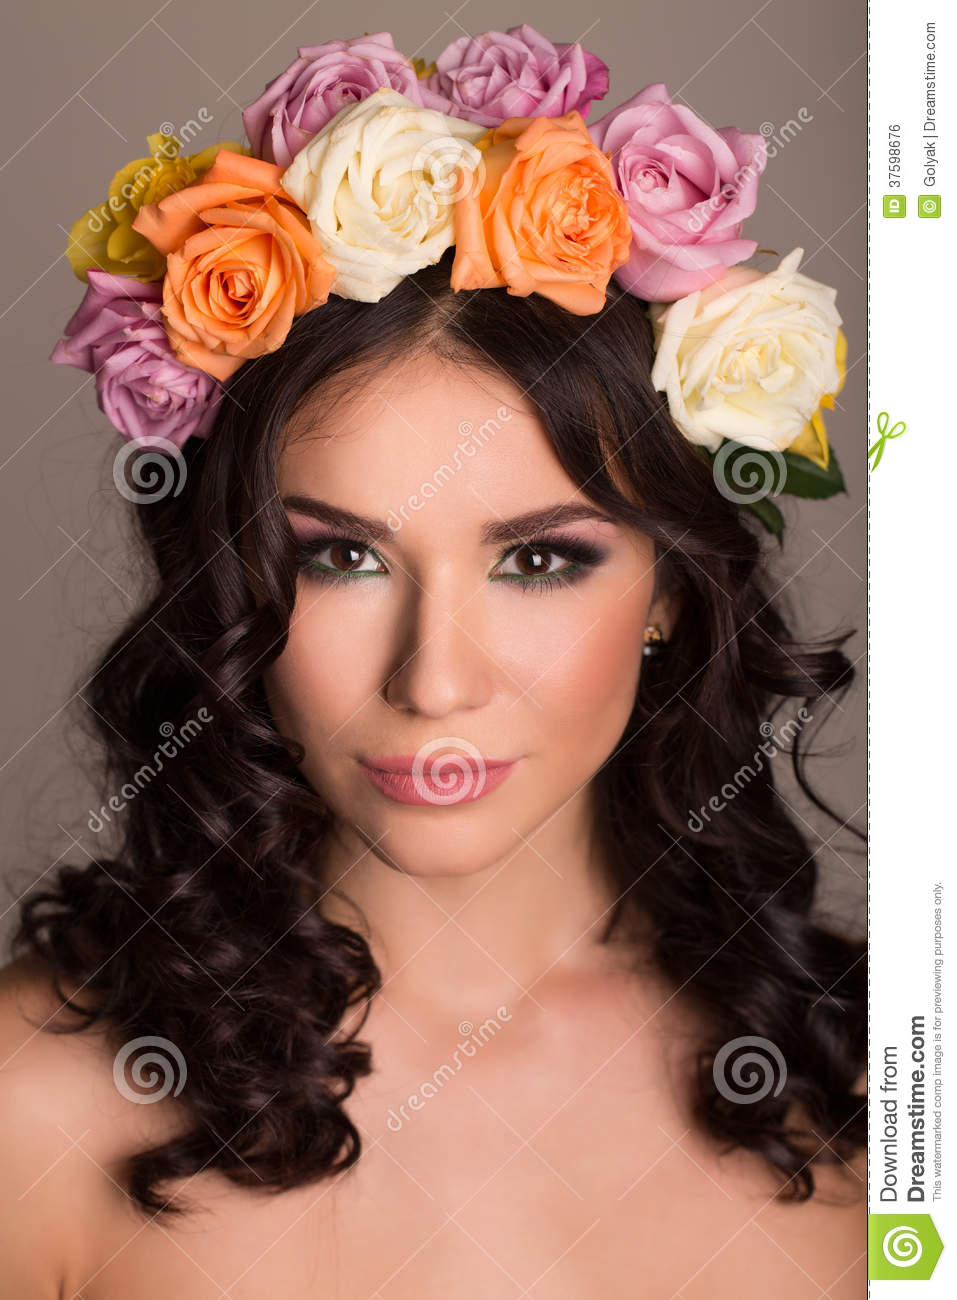 beautiful women supermodel in wreath of flowers close up